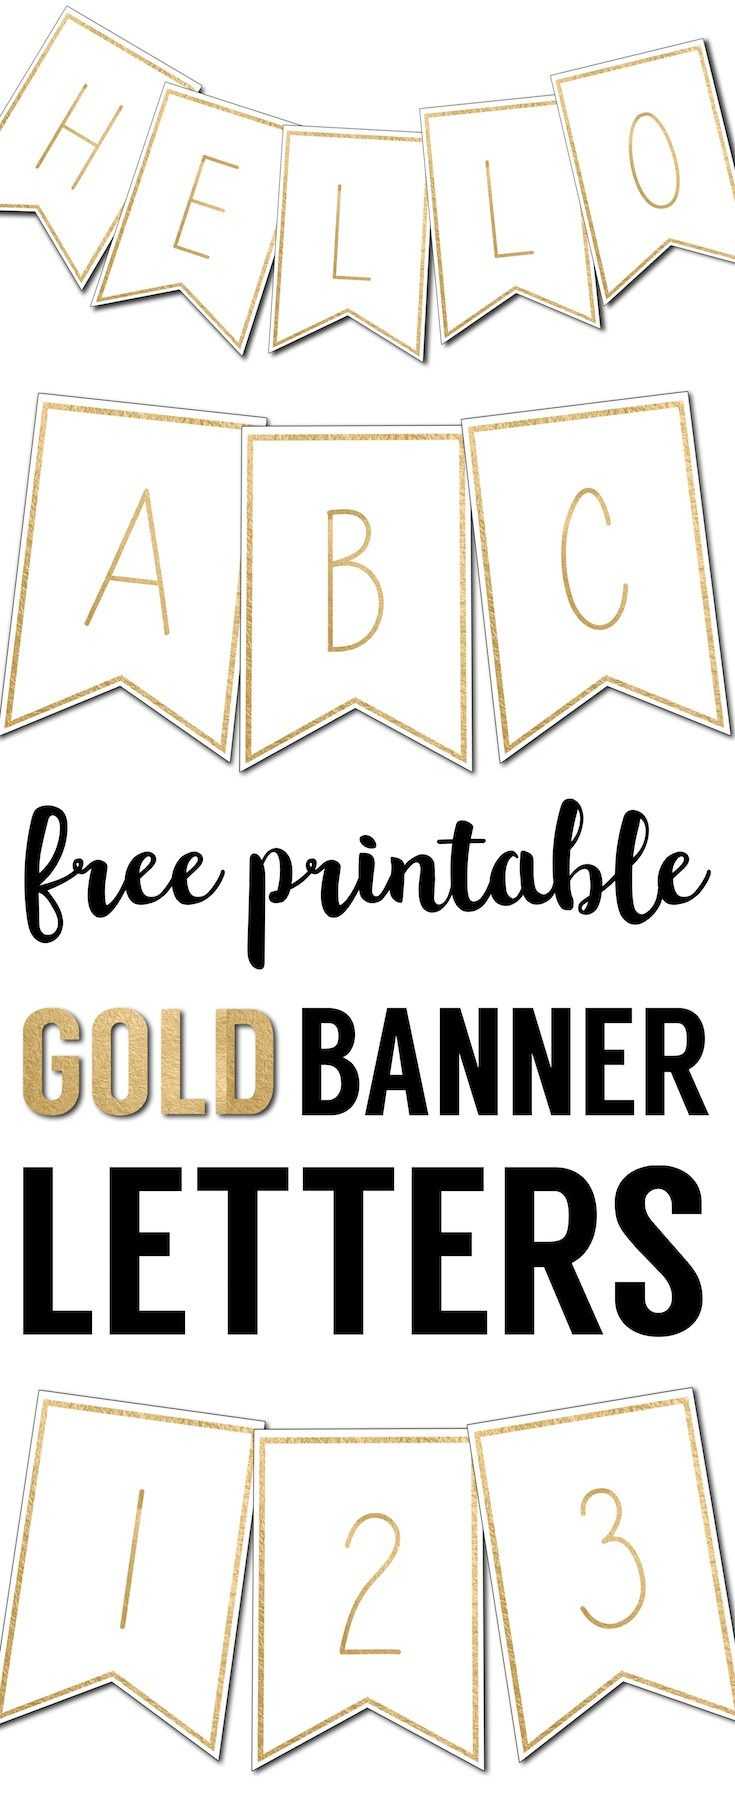 Free Printable Banner Letters Templates | Printable banner letters ...